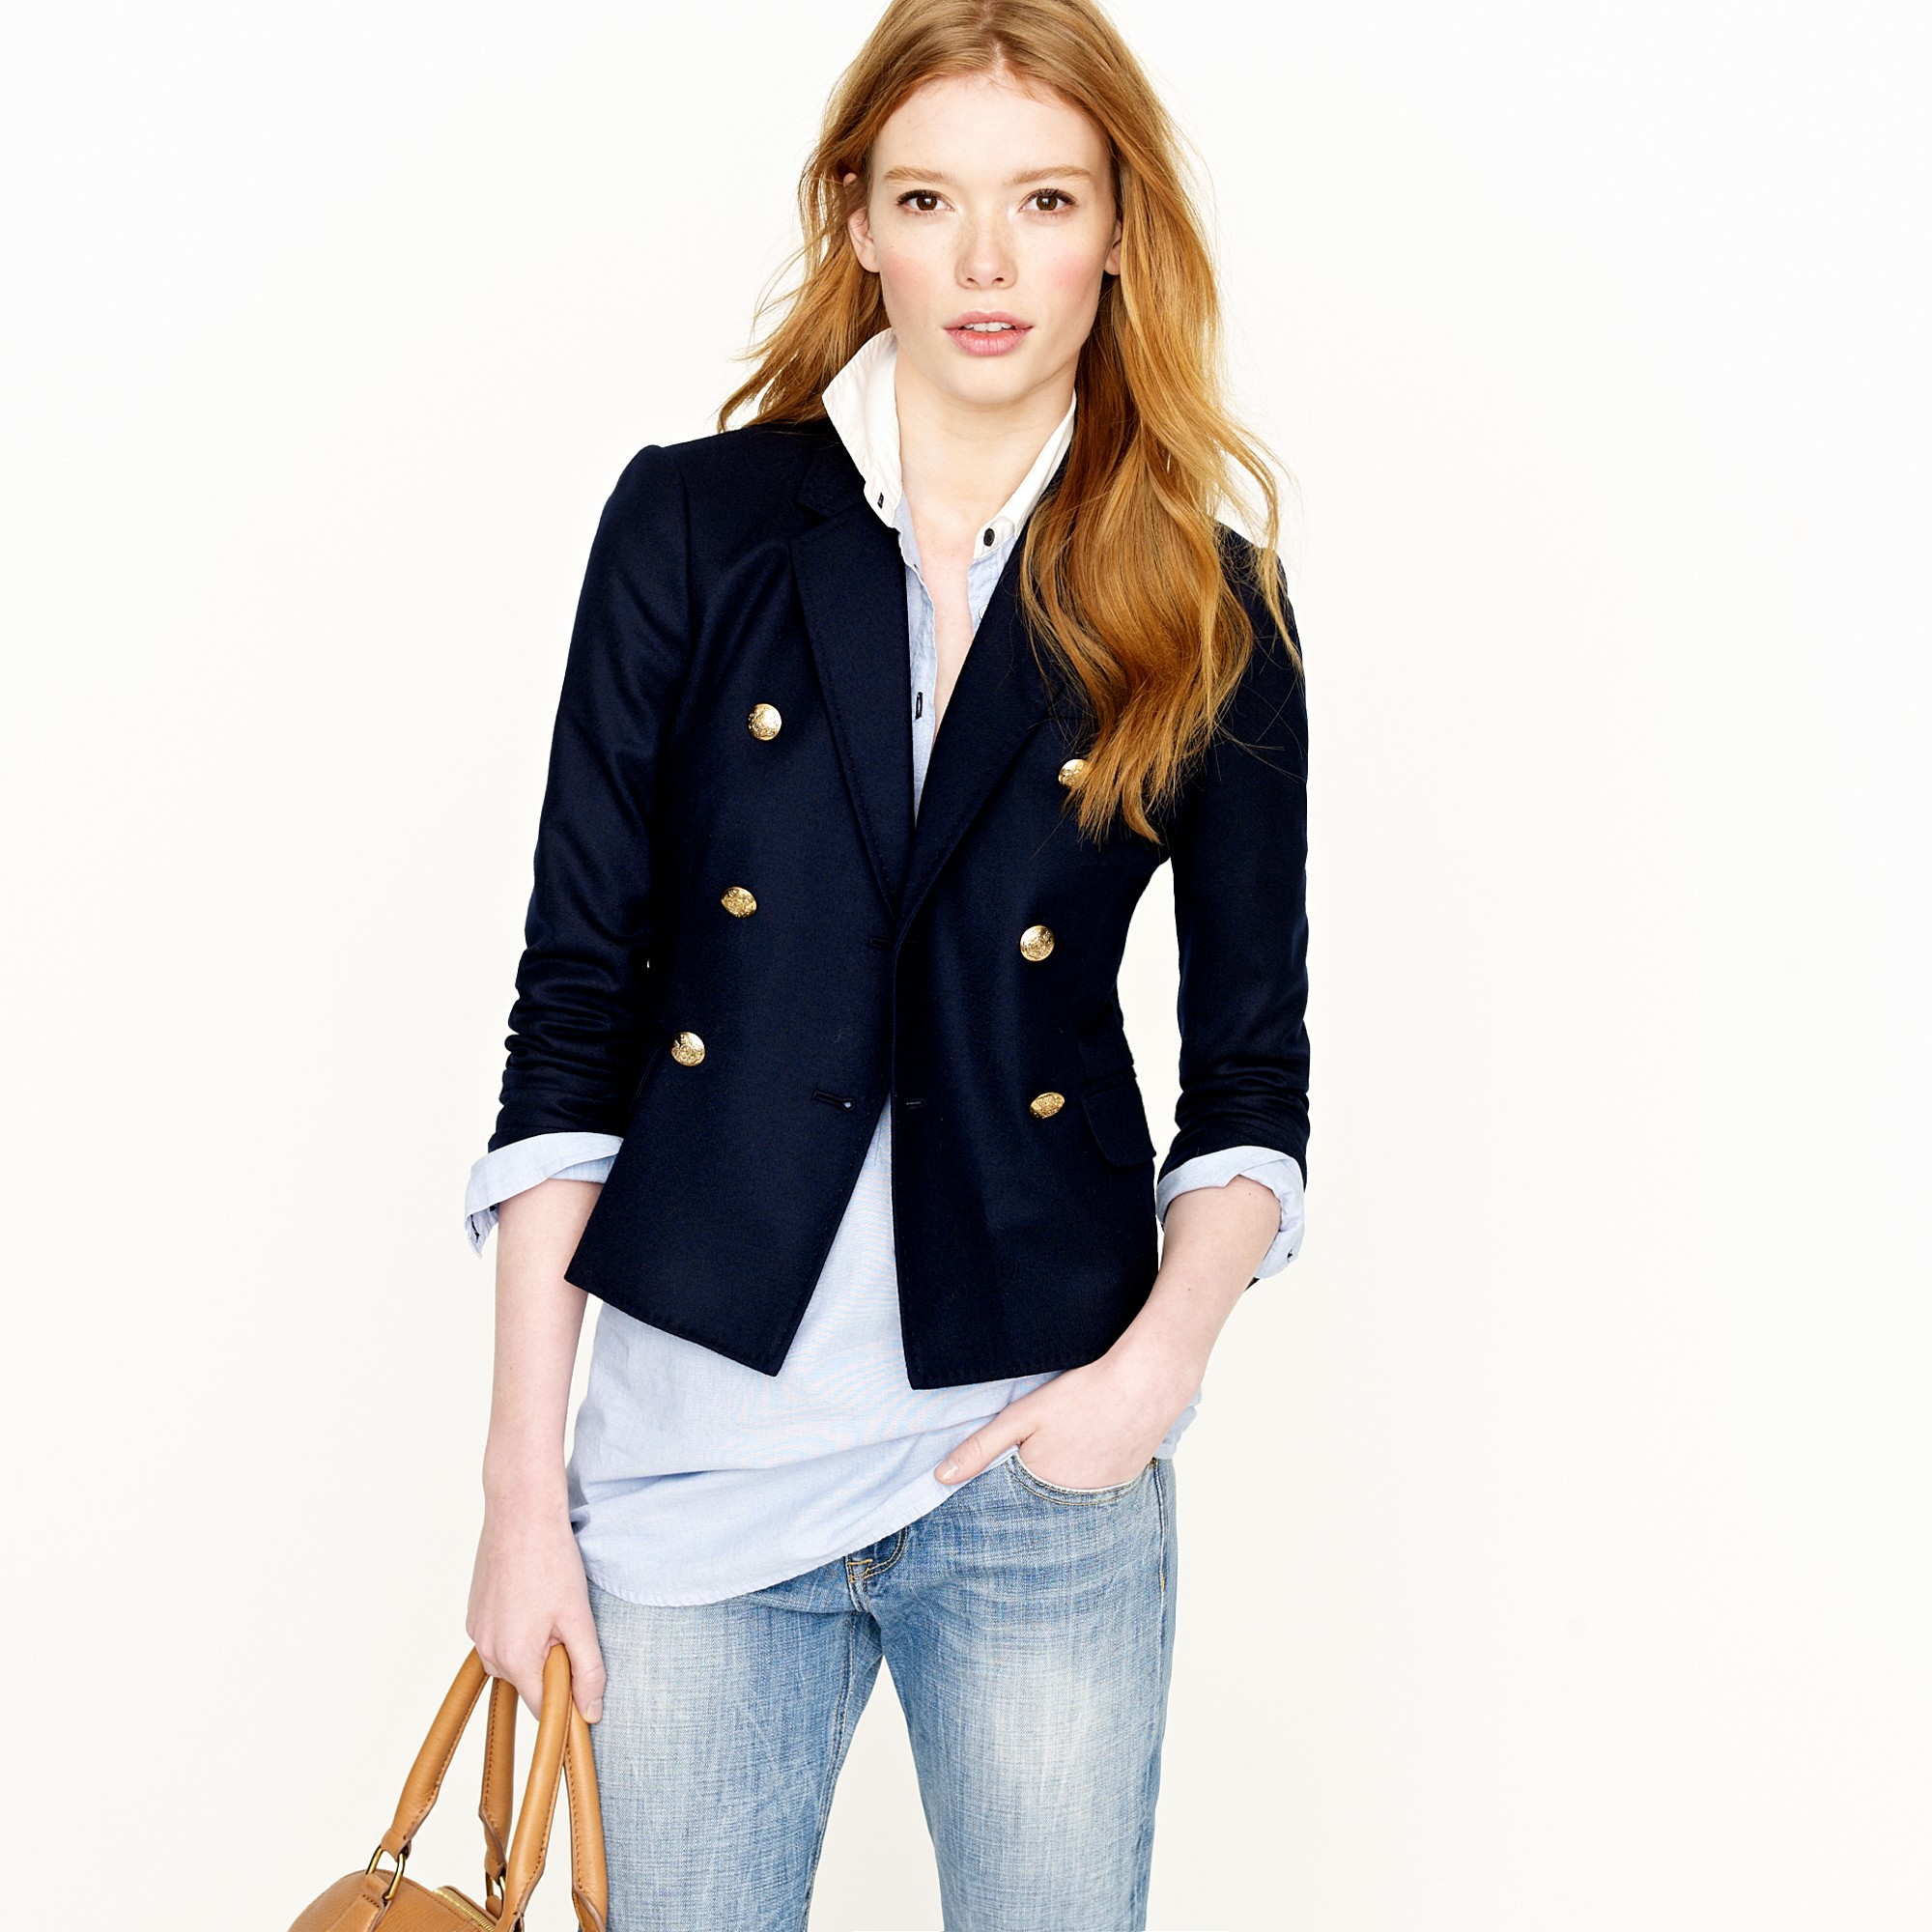 J.crew Double-breasted Ivy Blazer In Blue (navy)